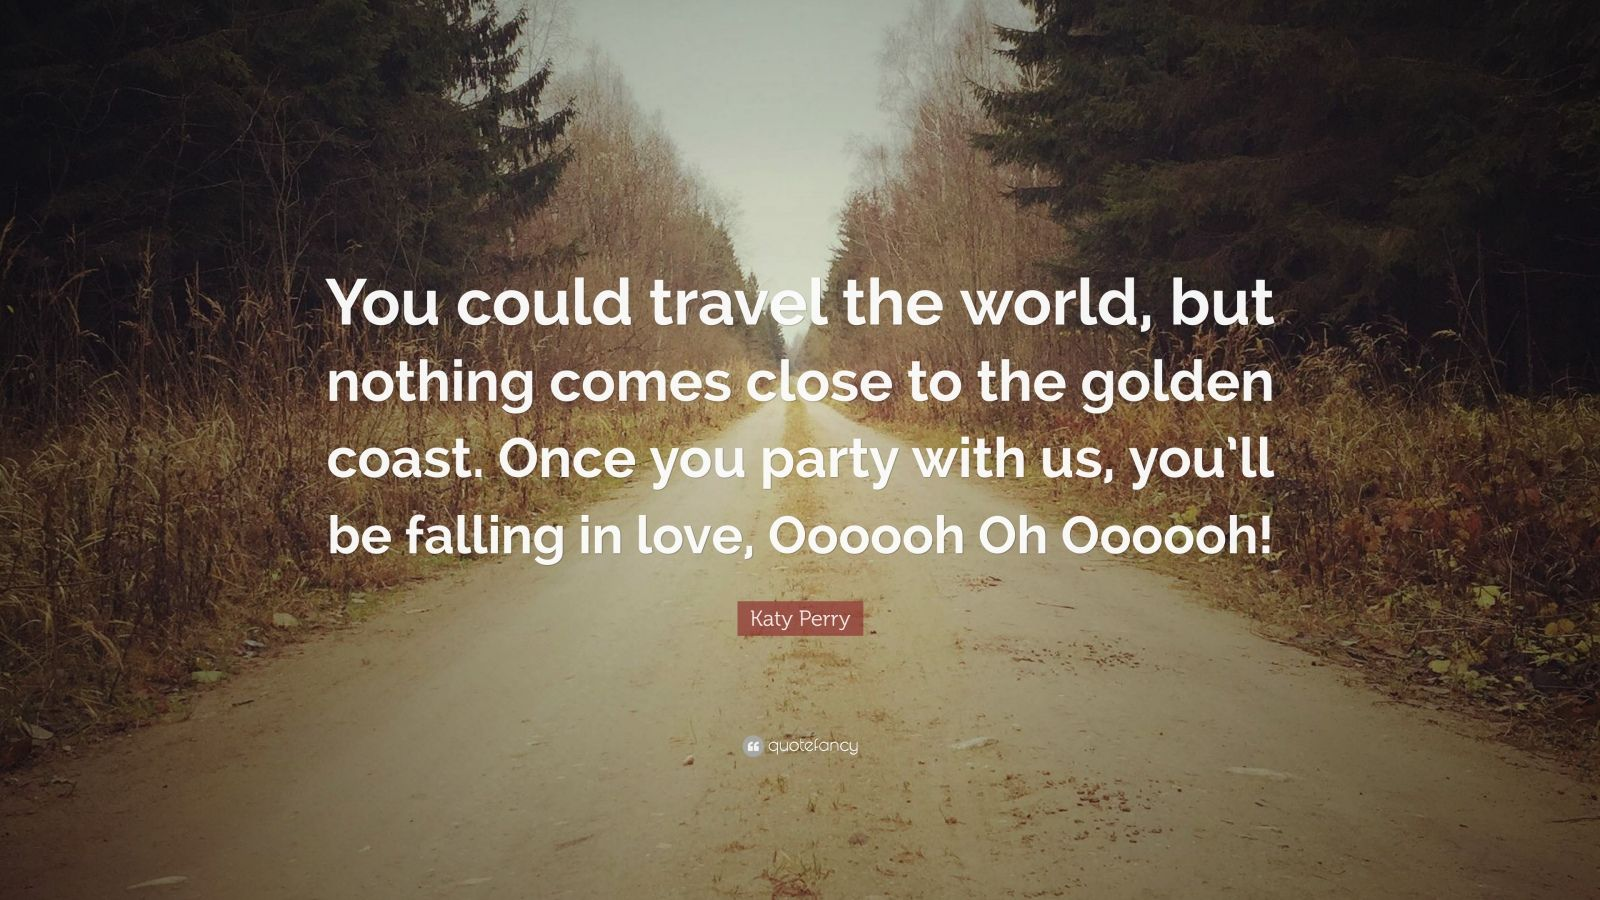 "Katy Perry Quote: ""You could travel the world, but nothing comes close to the golden coast. Once you party with us, you'll be falling in love, Oooooh Oh Oooooh!"""